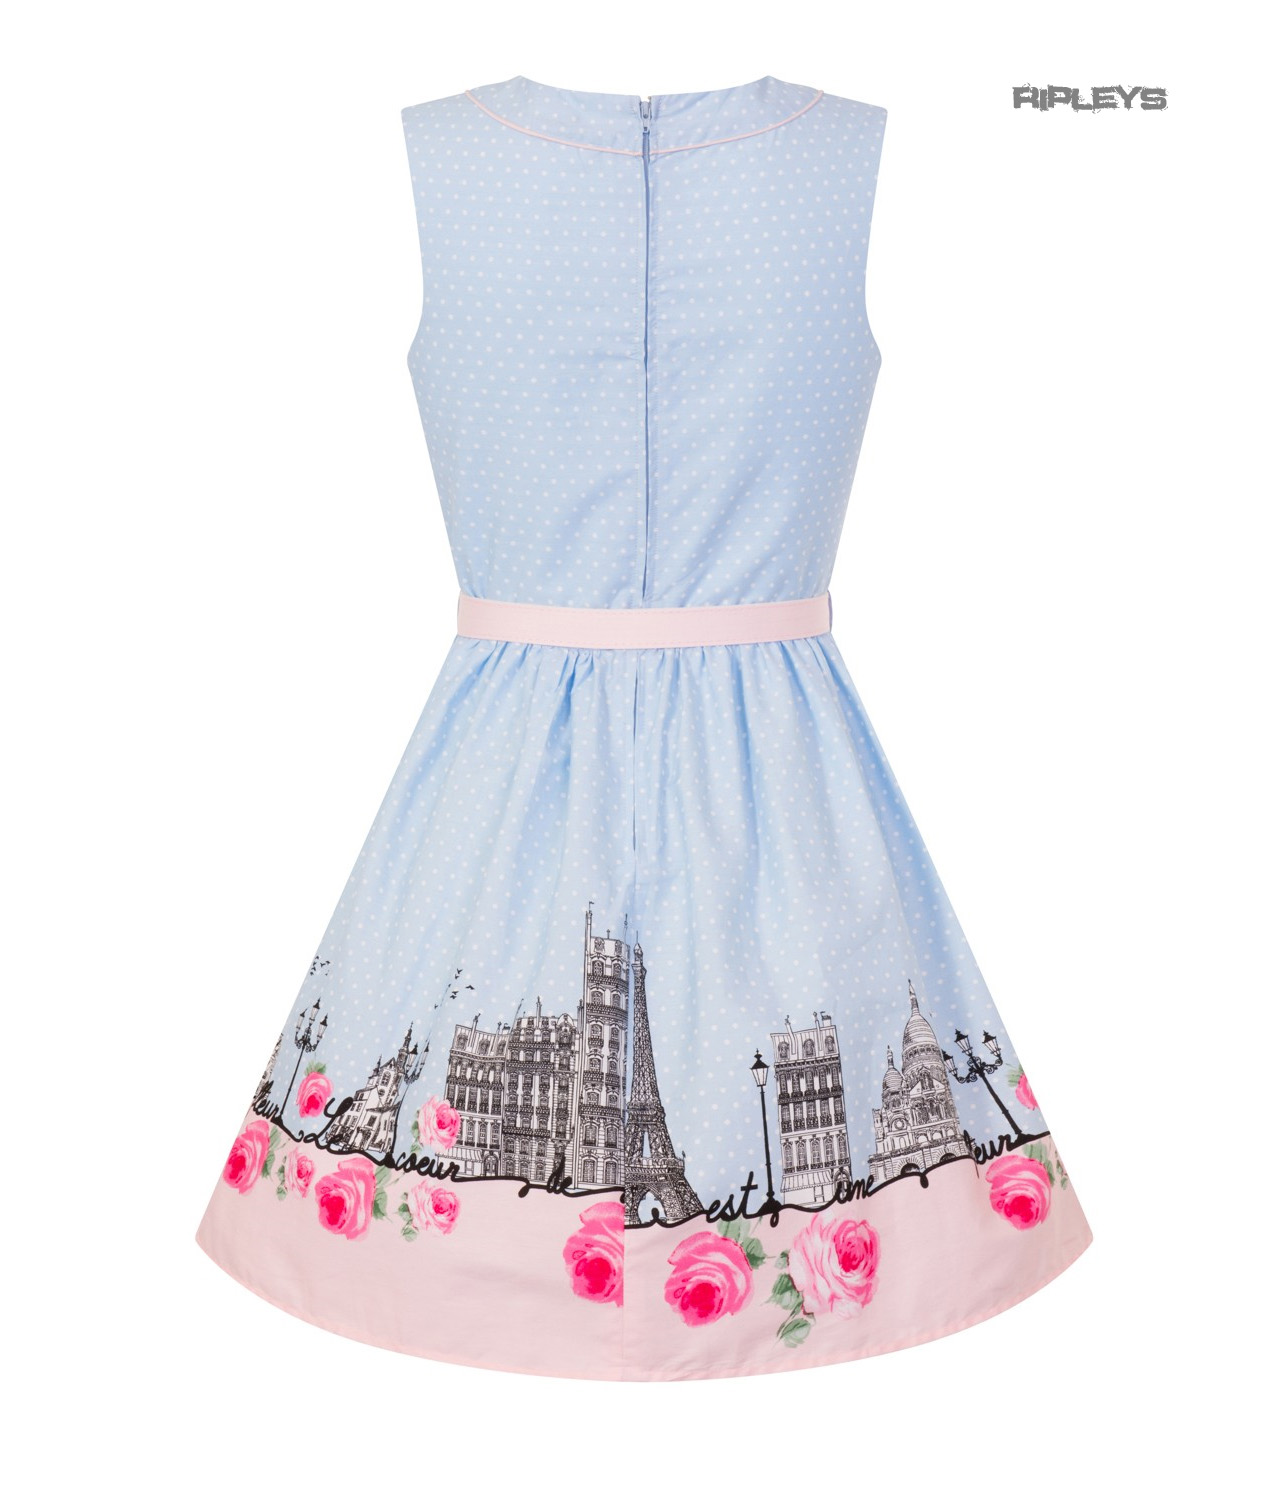 Hell-Bunny-50s-Vintage-Blue-Polka-Dot-PANAME-Mini-Dress-Paris-All-Sizes thumbnail 42